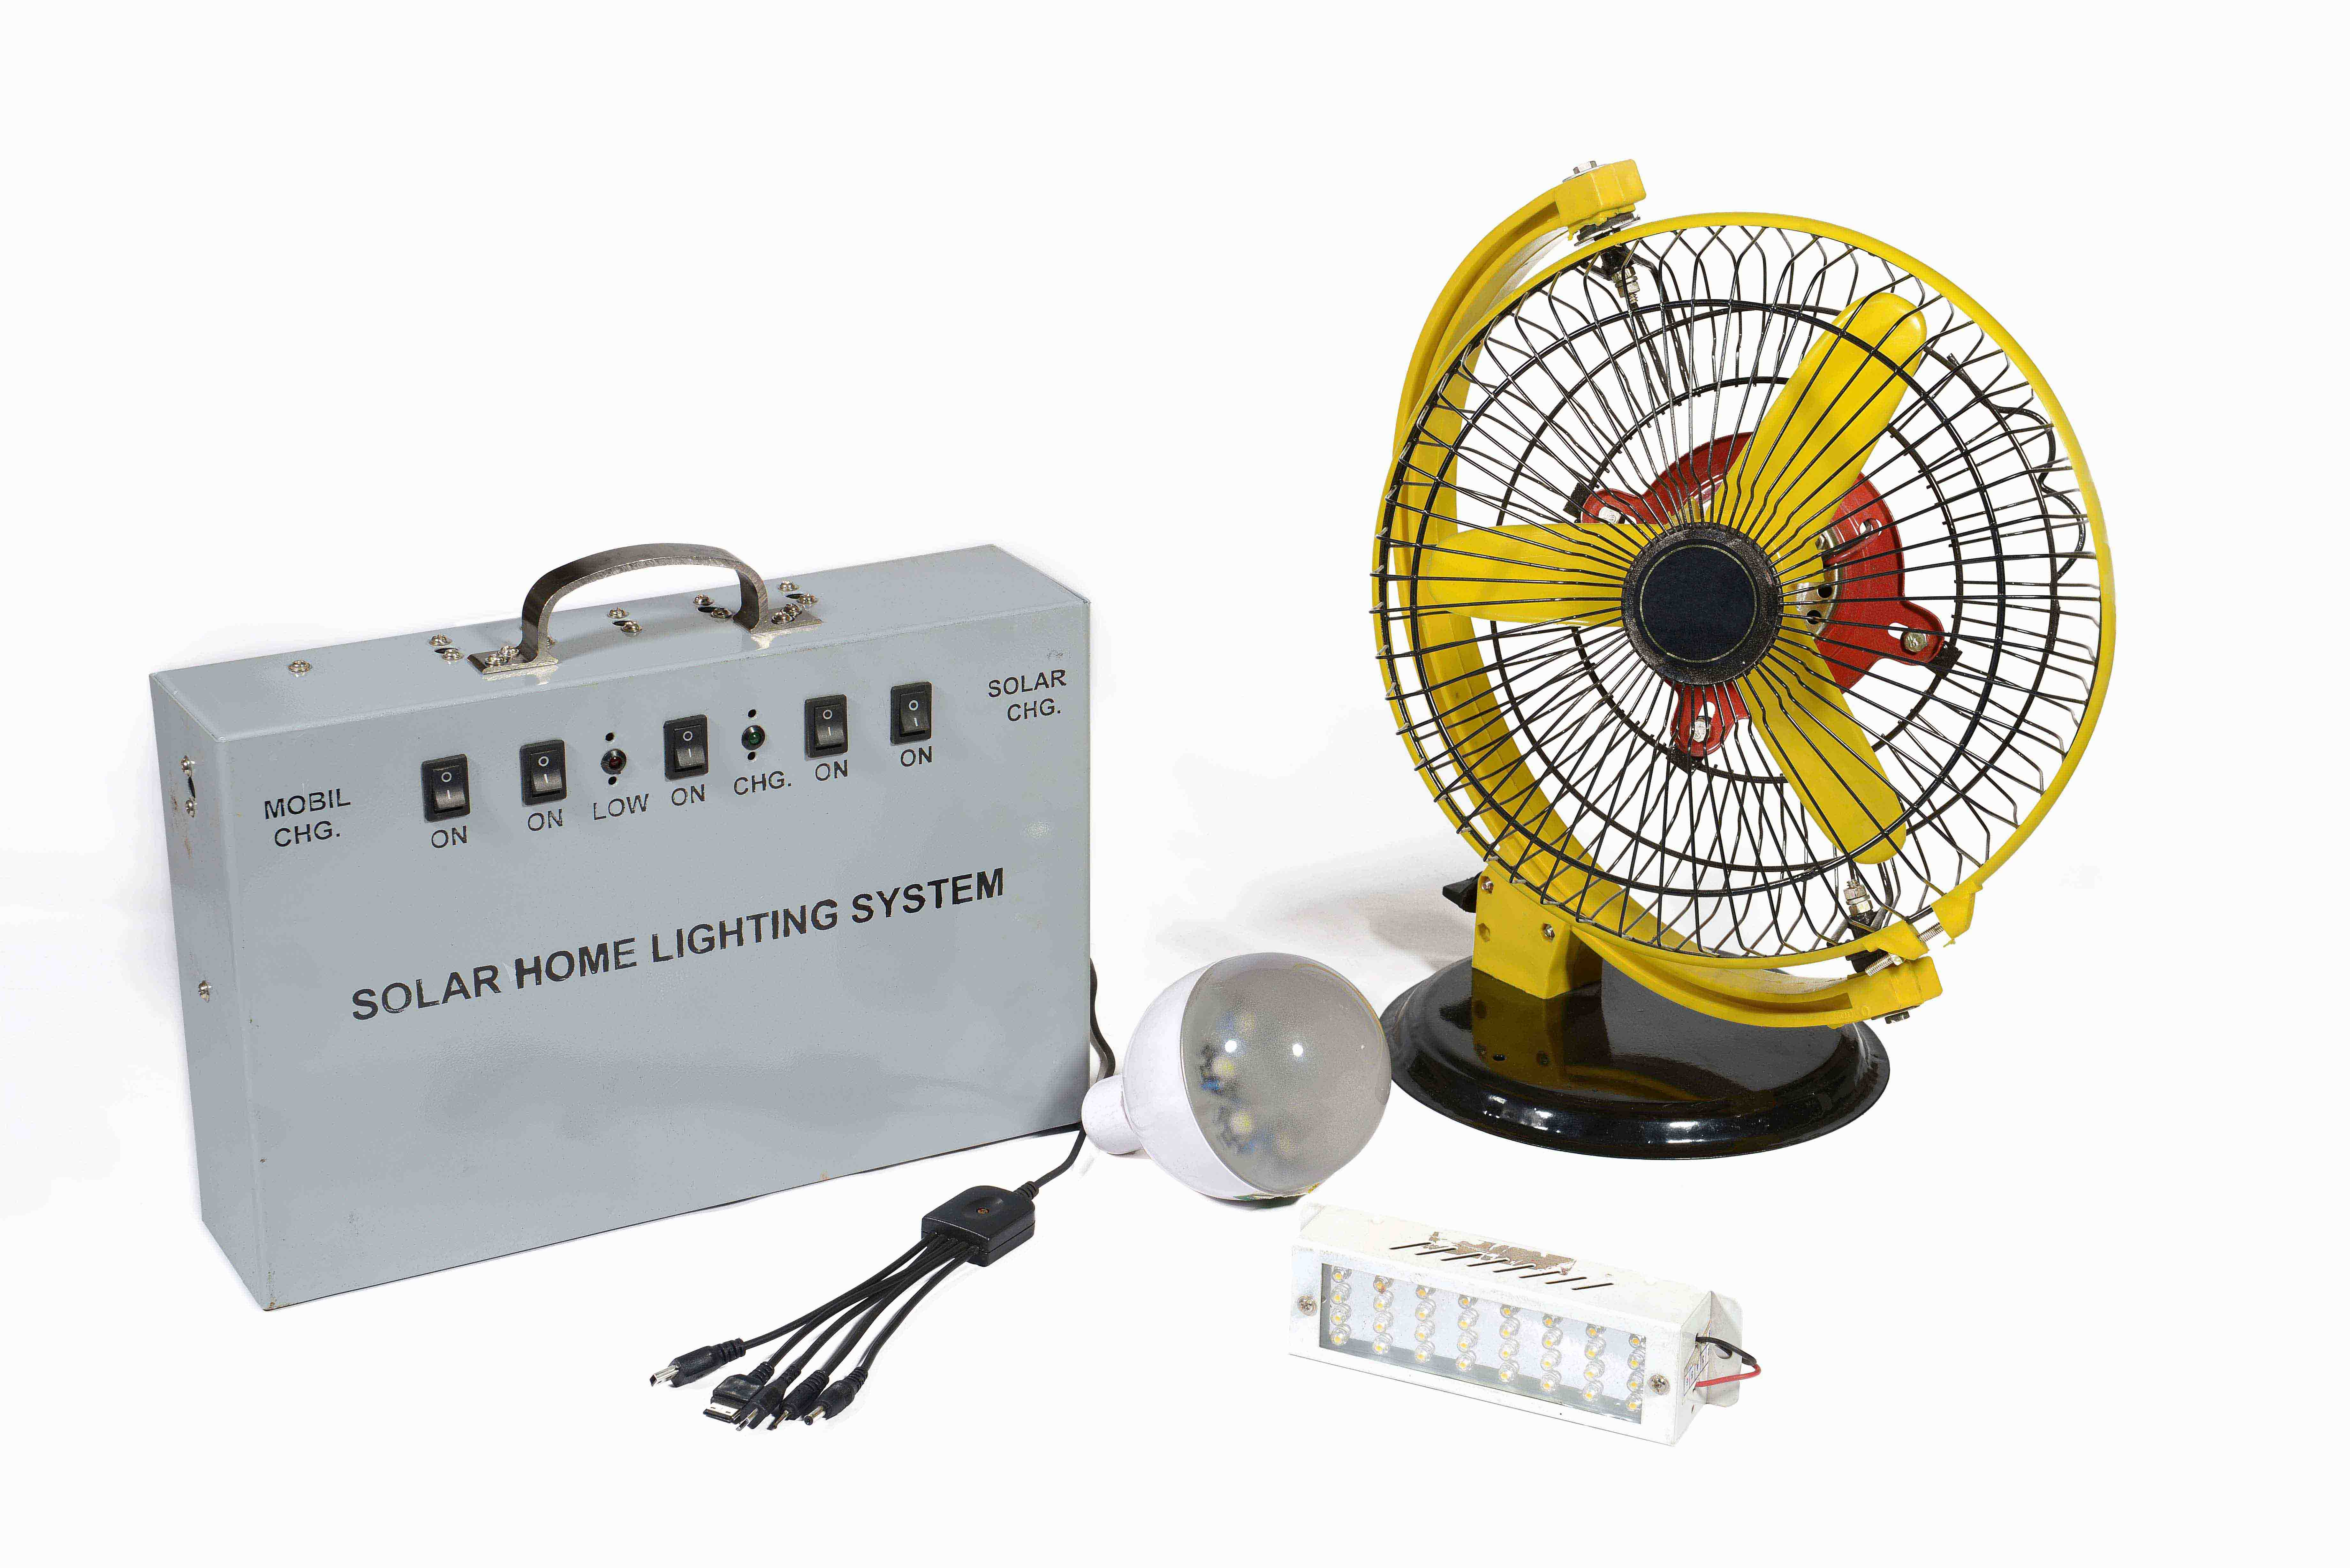 Solar Home Lighting System HLS 14